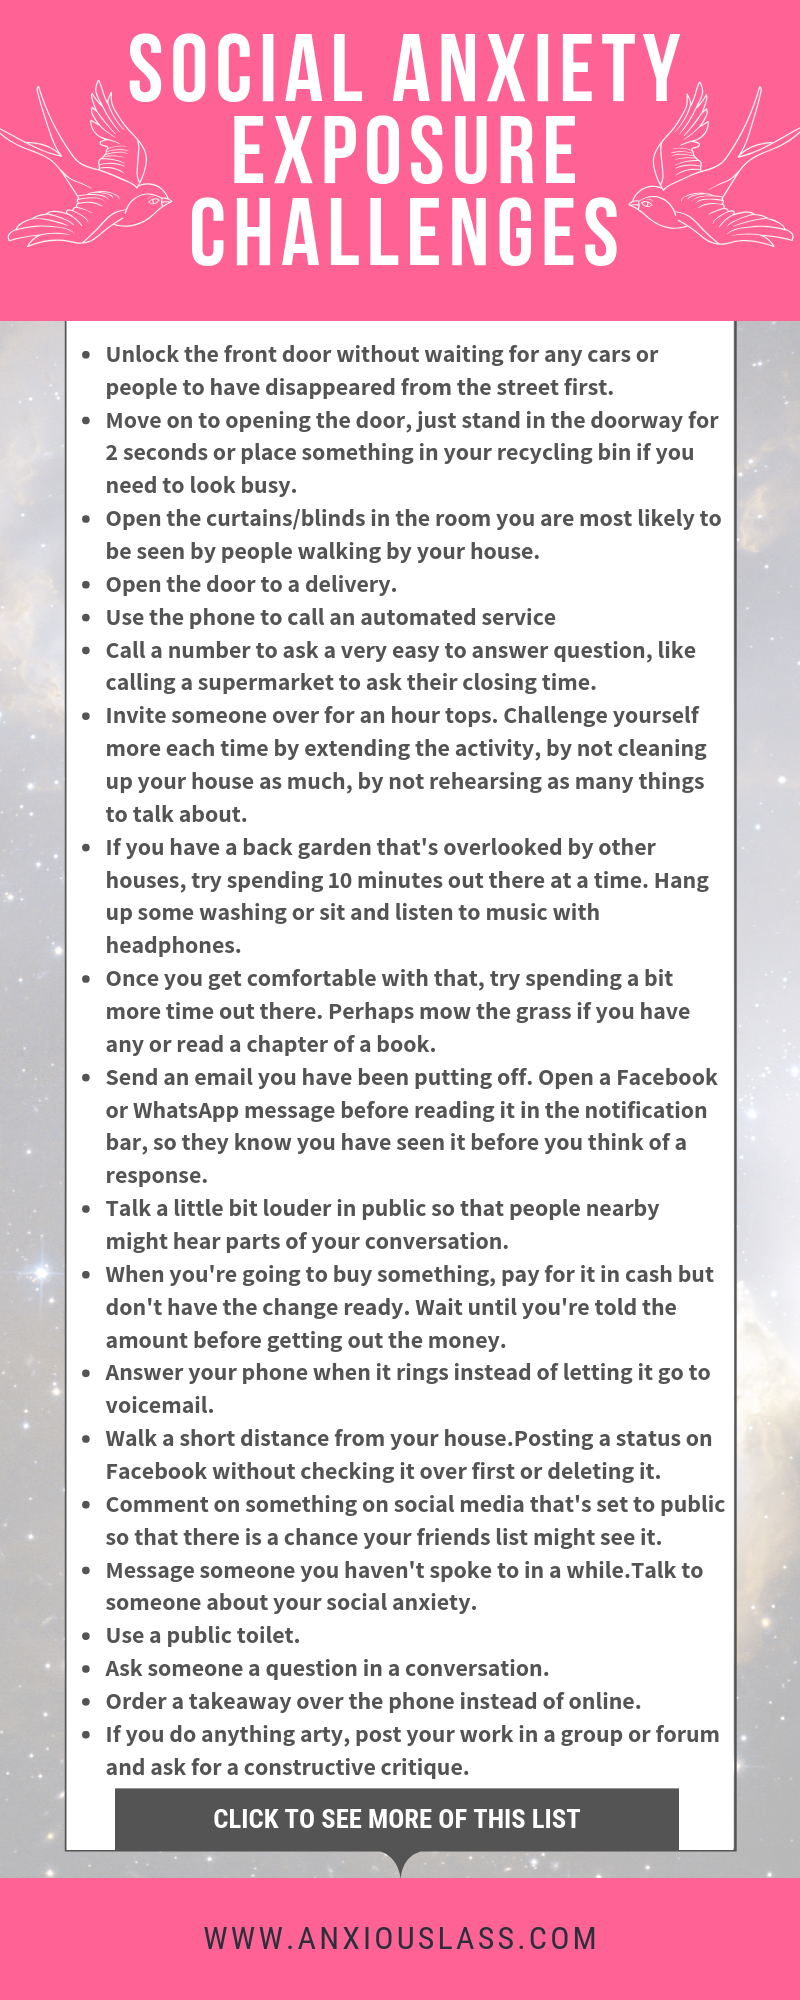 Social Anxiety Challenge List For Exposure Therapy - Anxious Lass